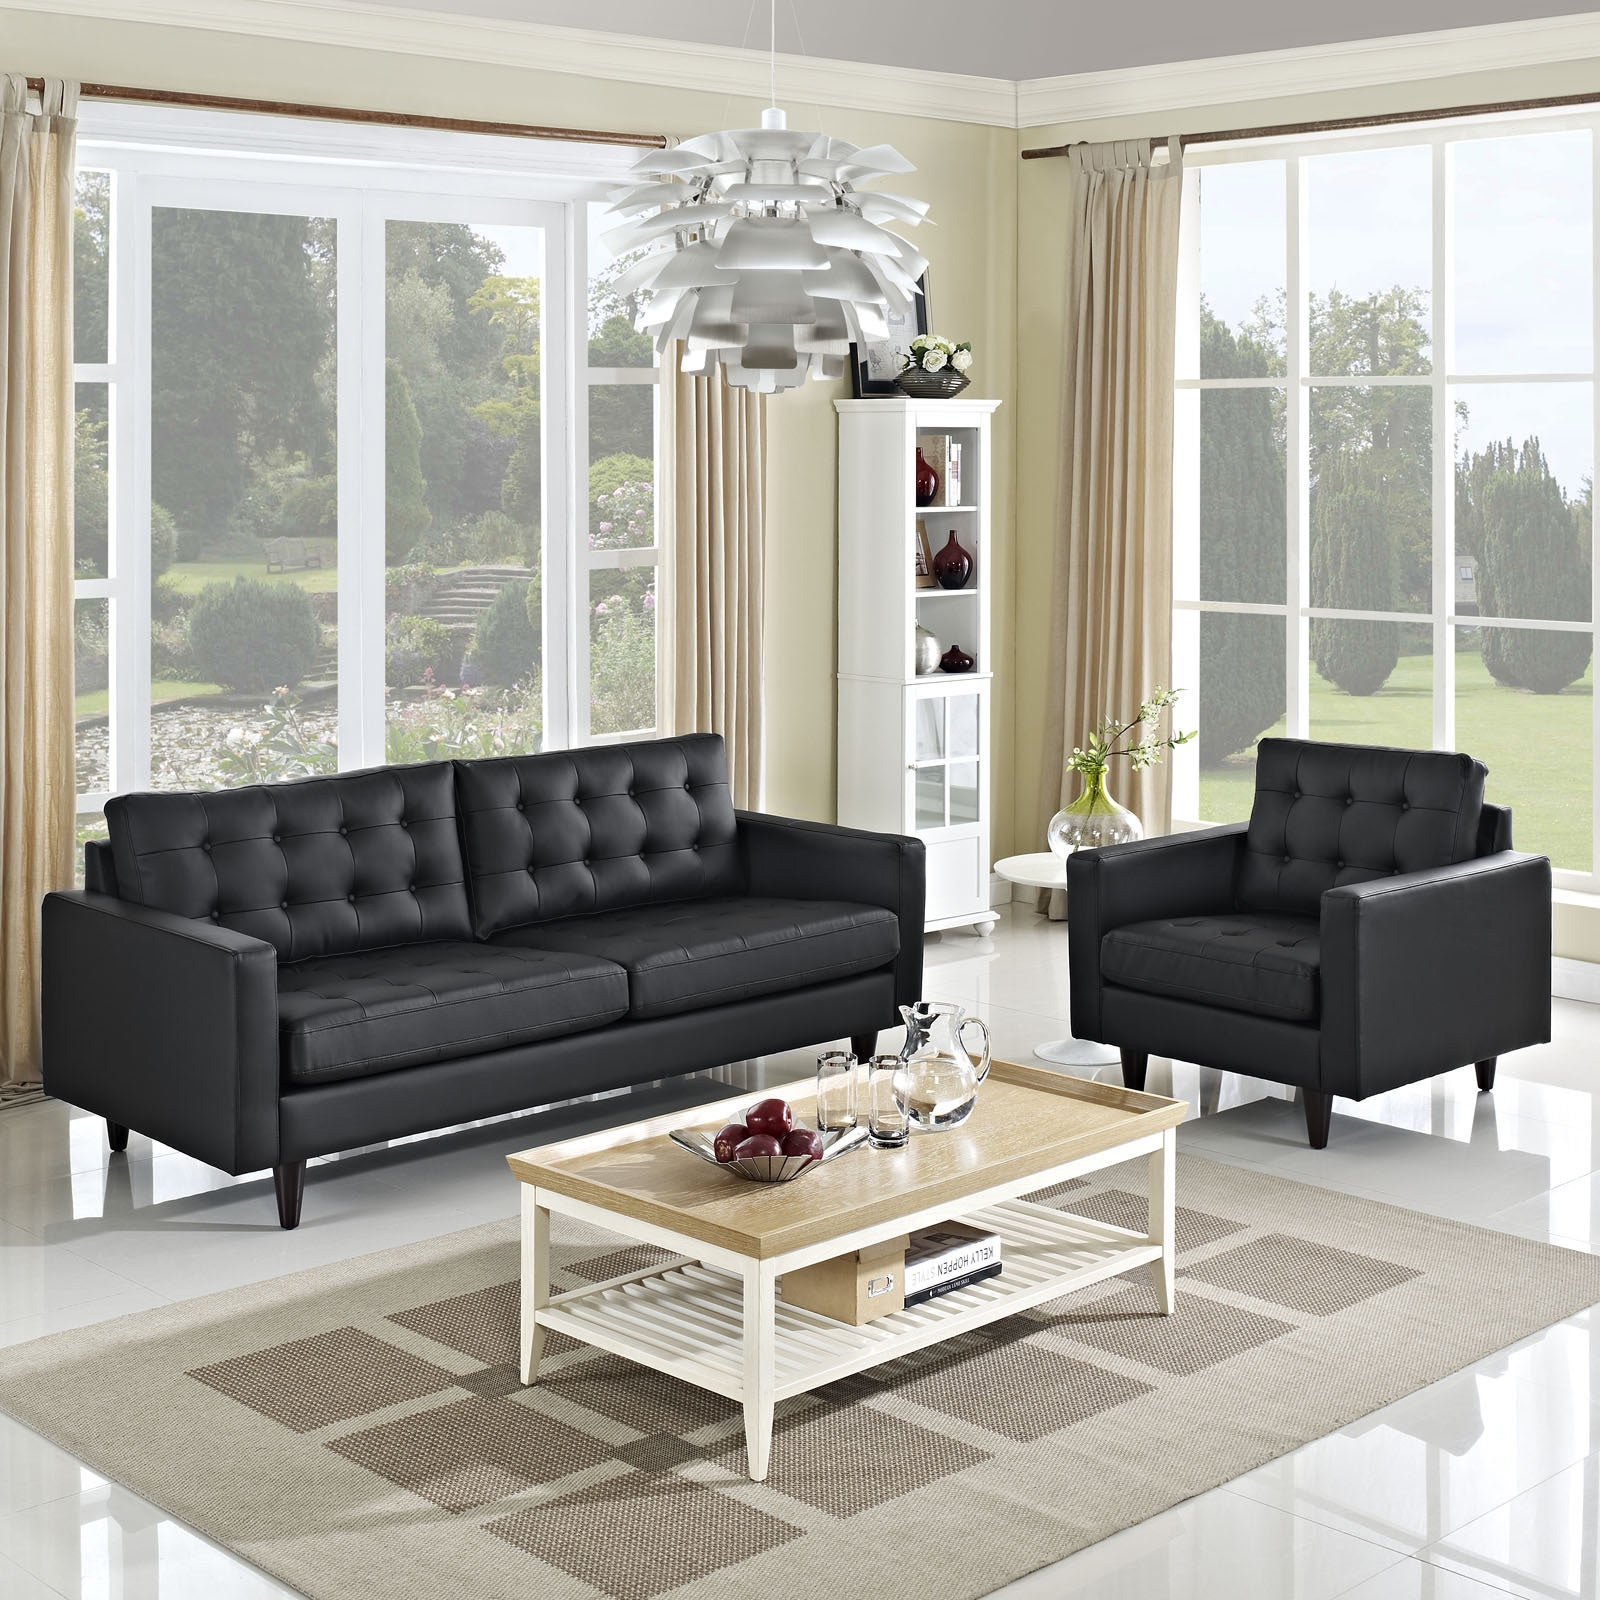 Sofas Couches Online At Our Best Living Room Furniture Deals